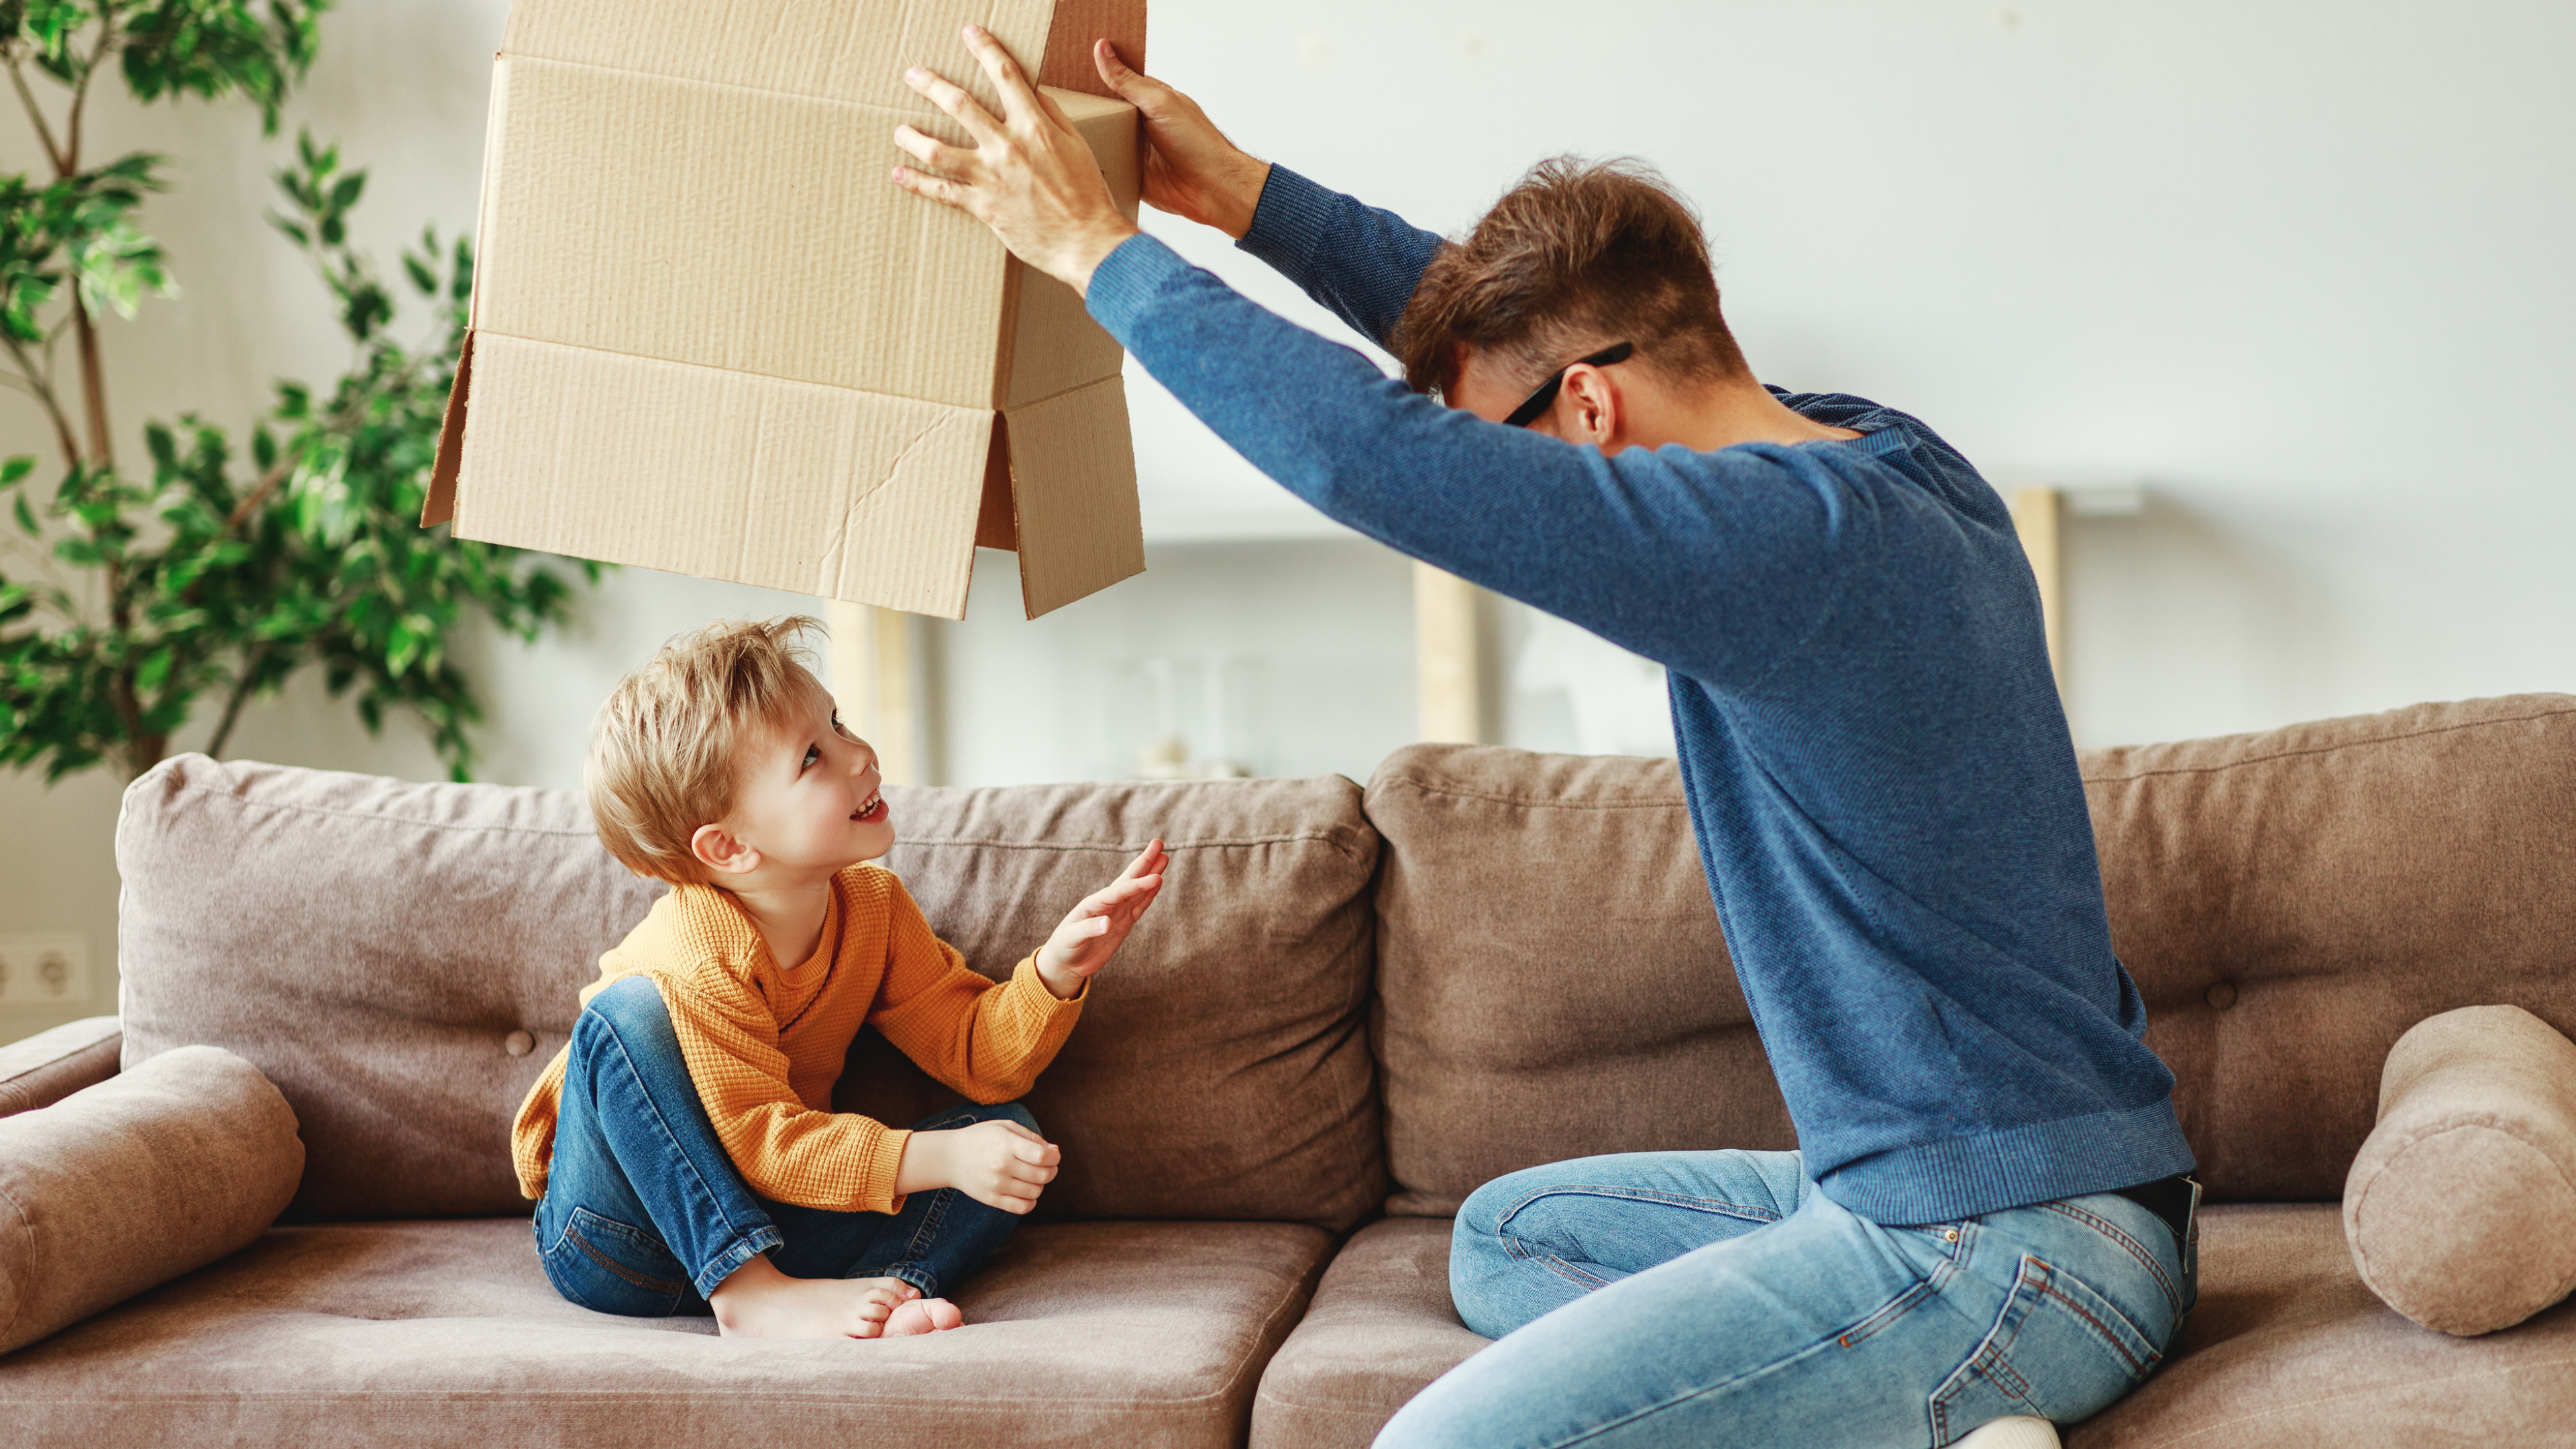 Side view of adult man lifting carton box over smiling boy while sitting on sofa and playing at home together